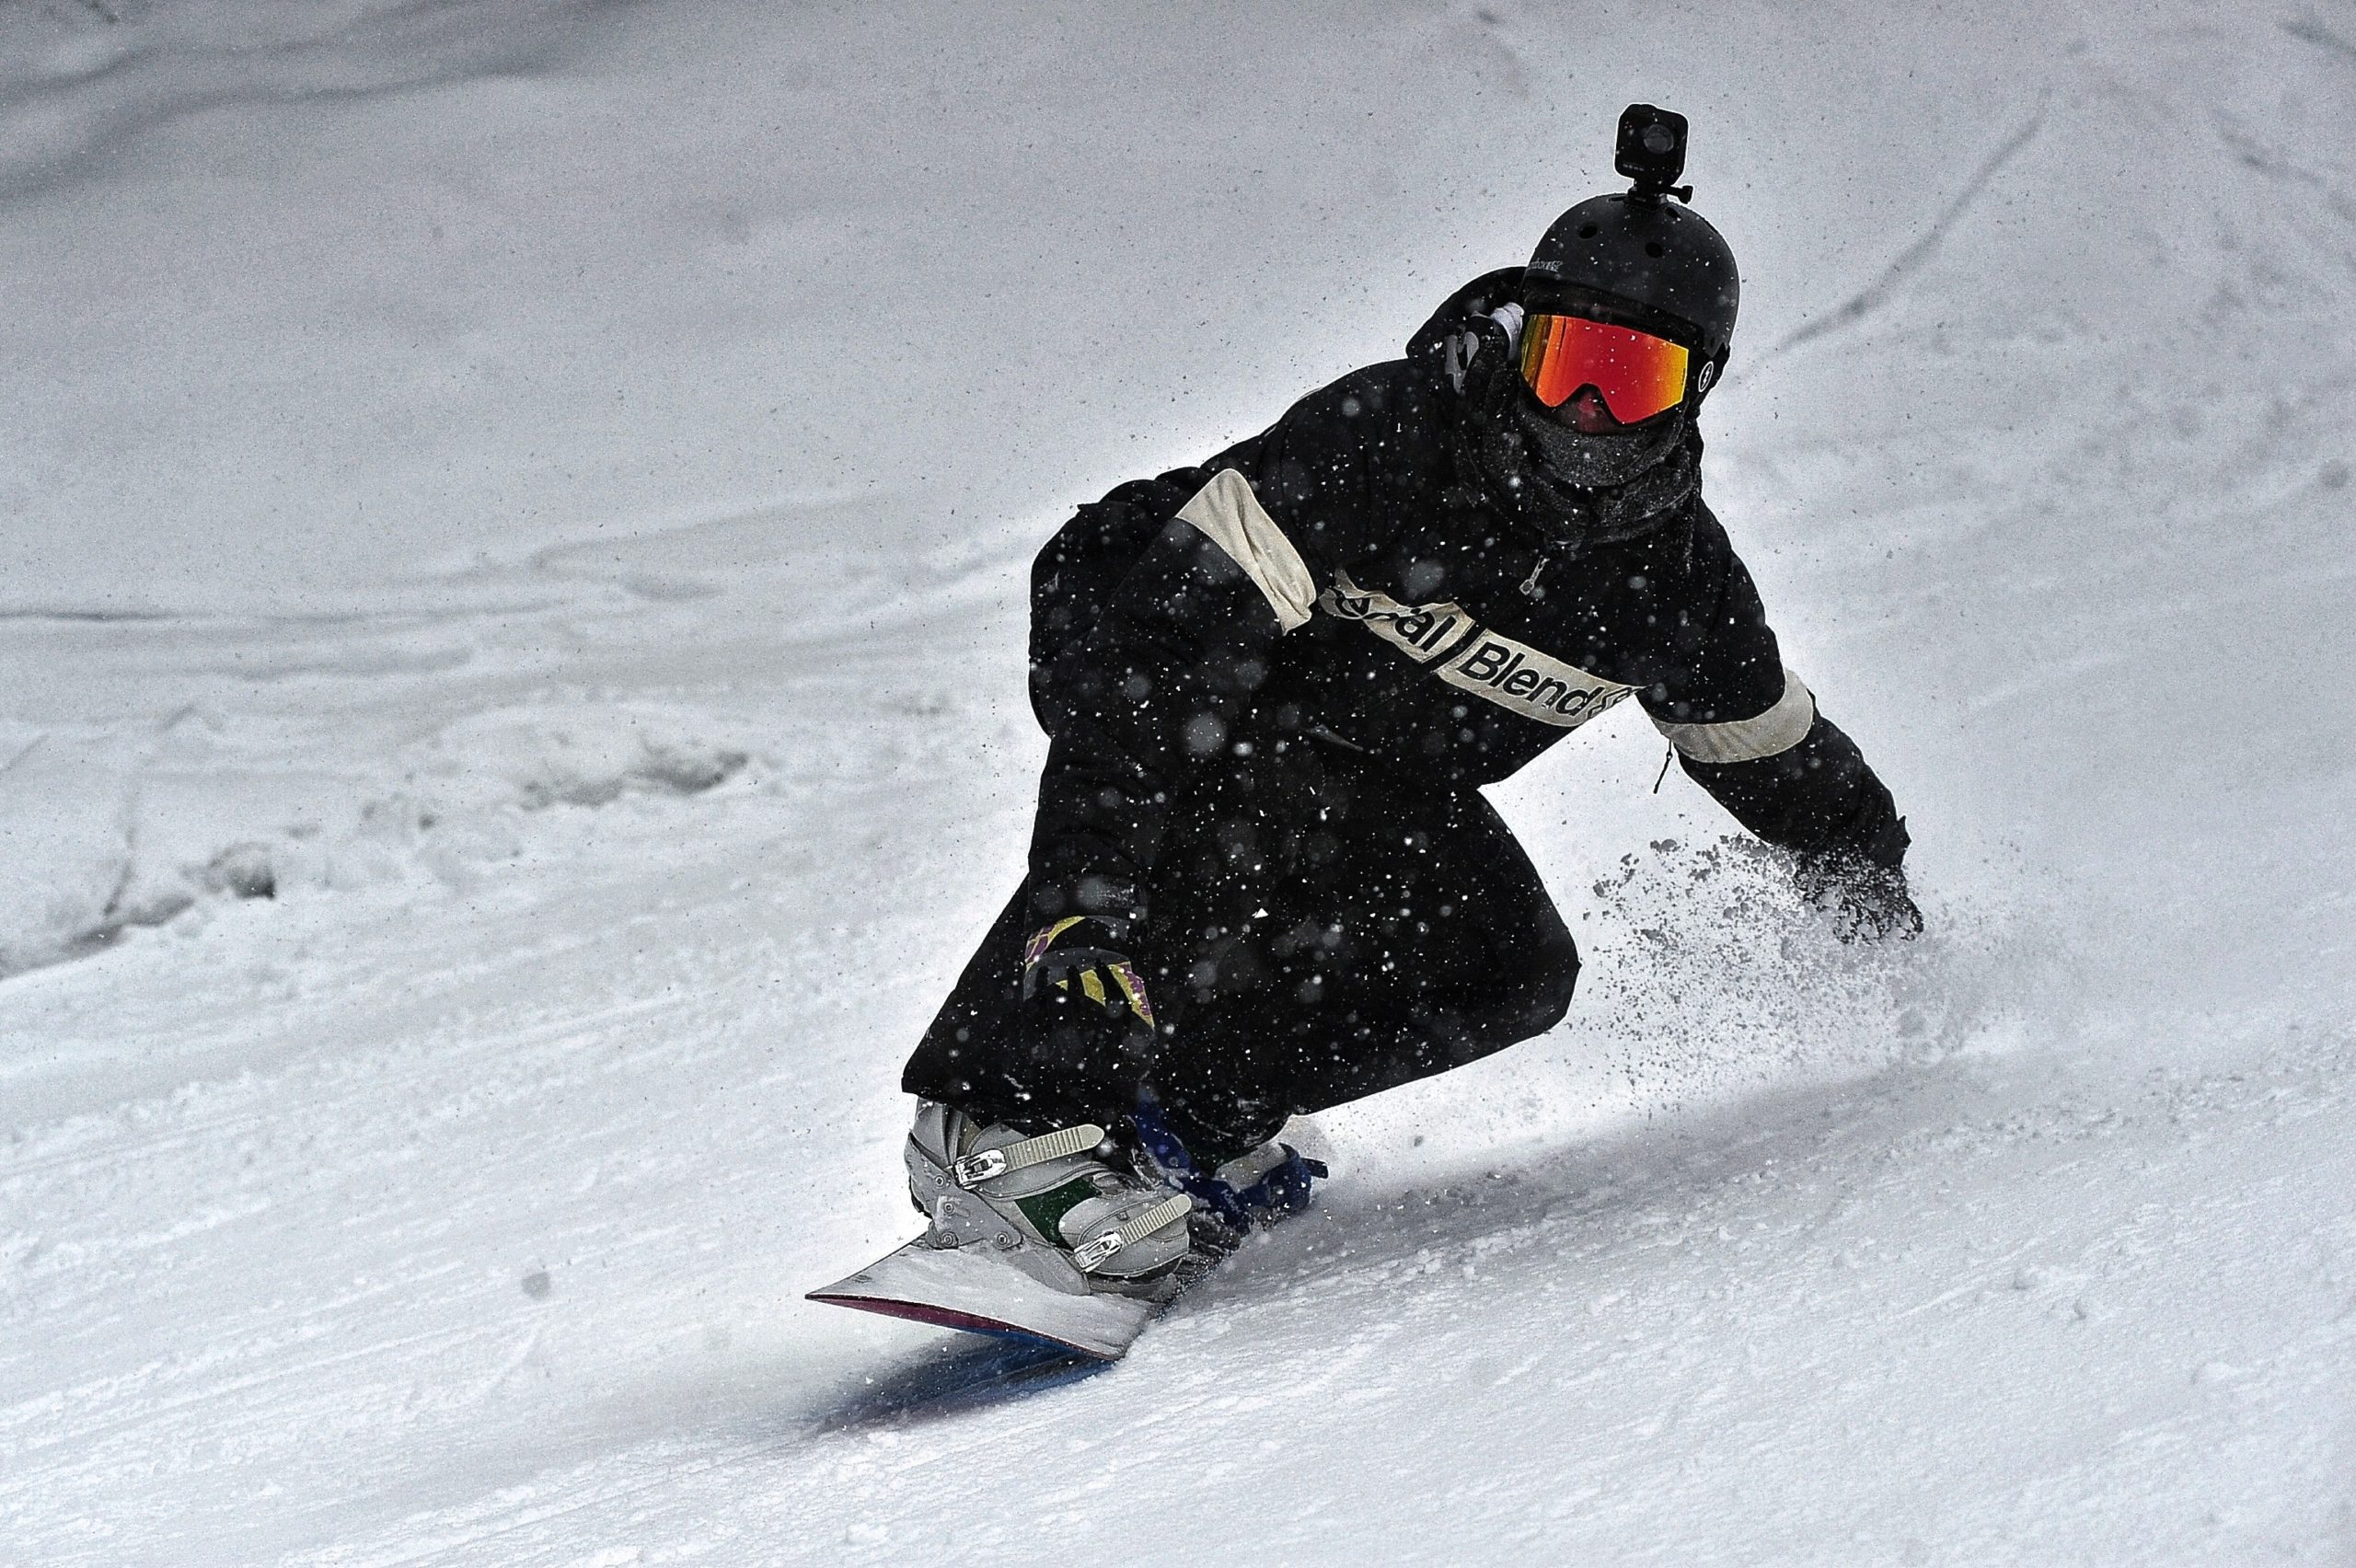 Snowboard Helmets – The Difference Between Ski And Snowboard Helmets